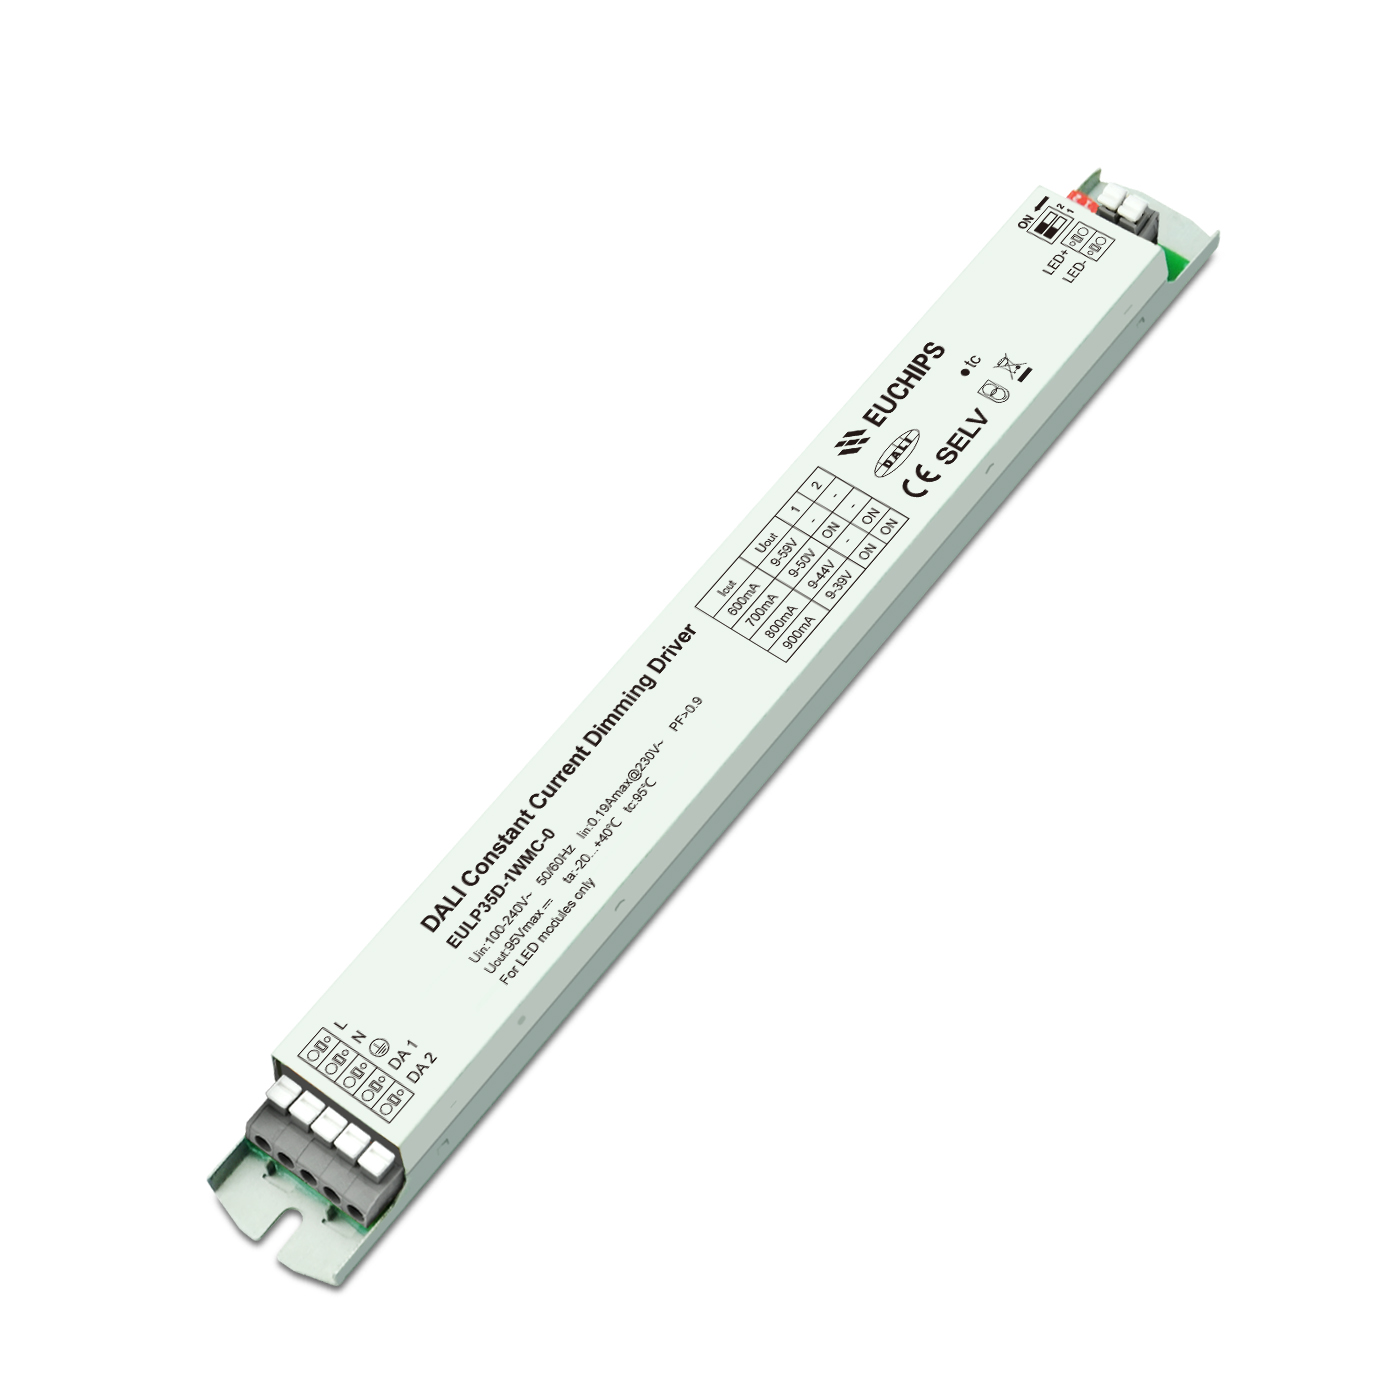 China Manufacturer for 35w DALI CV Dimmer – 35W 600/700/800/900mA*1ch CC DALI Driver – Euchips detail pictures